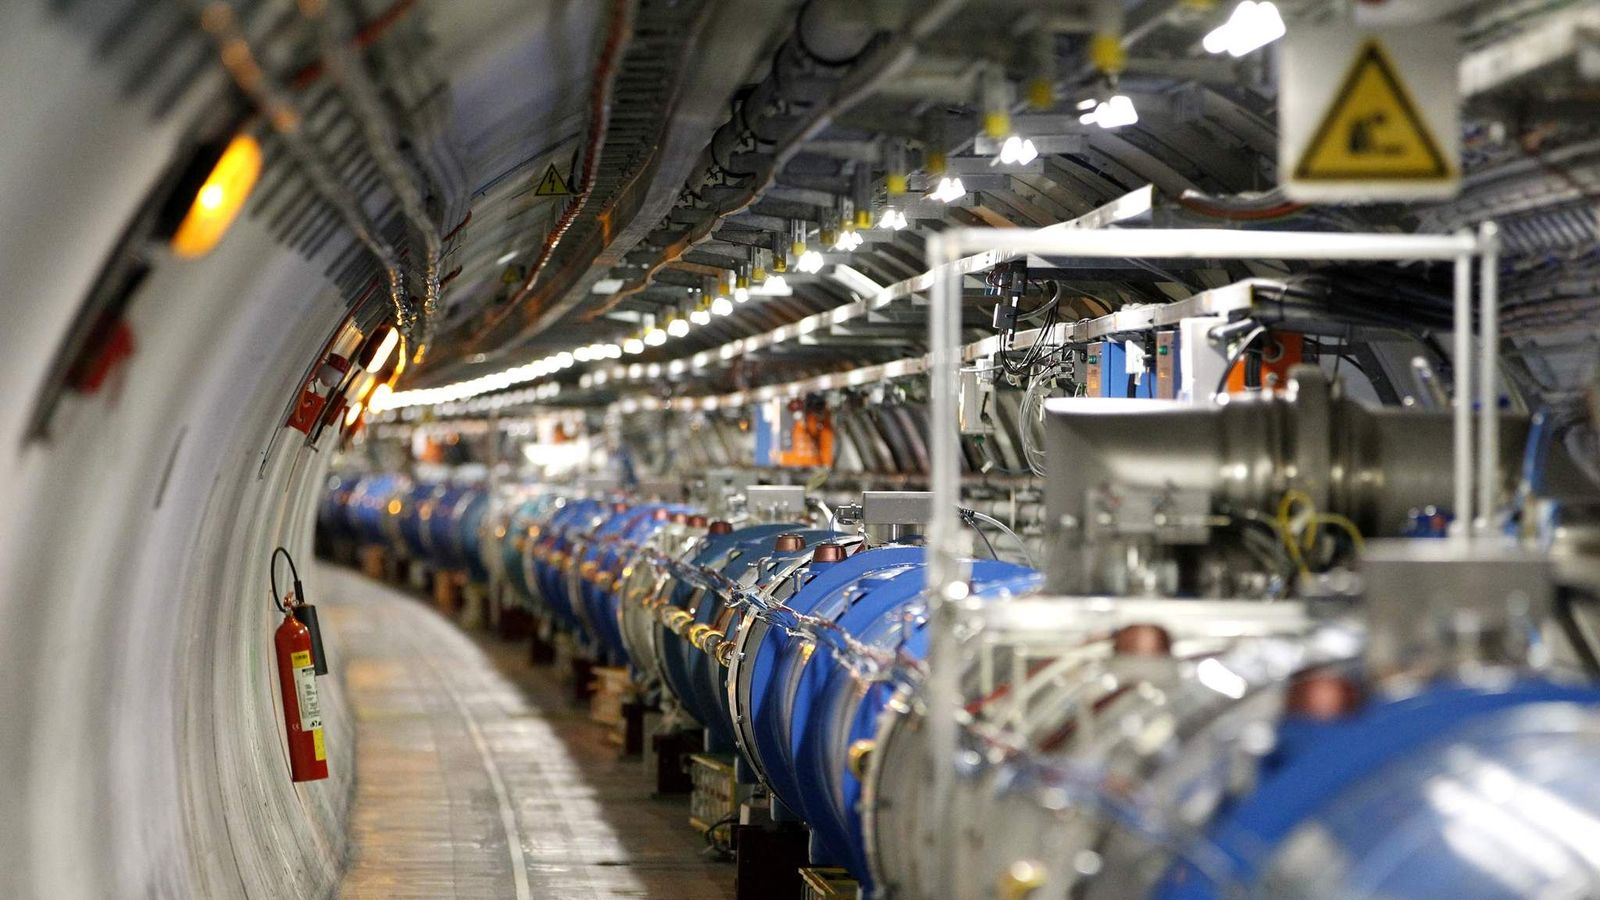 large hadron collider research paper The large hadron collider, also known as lhc, is a very massive functional scientific instrument used in physics and material science located at geneva, switzerland - the large hadron collider essay introduction it is used to help us understand matter, on the atomic level.